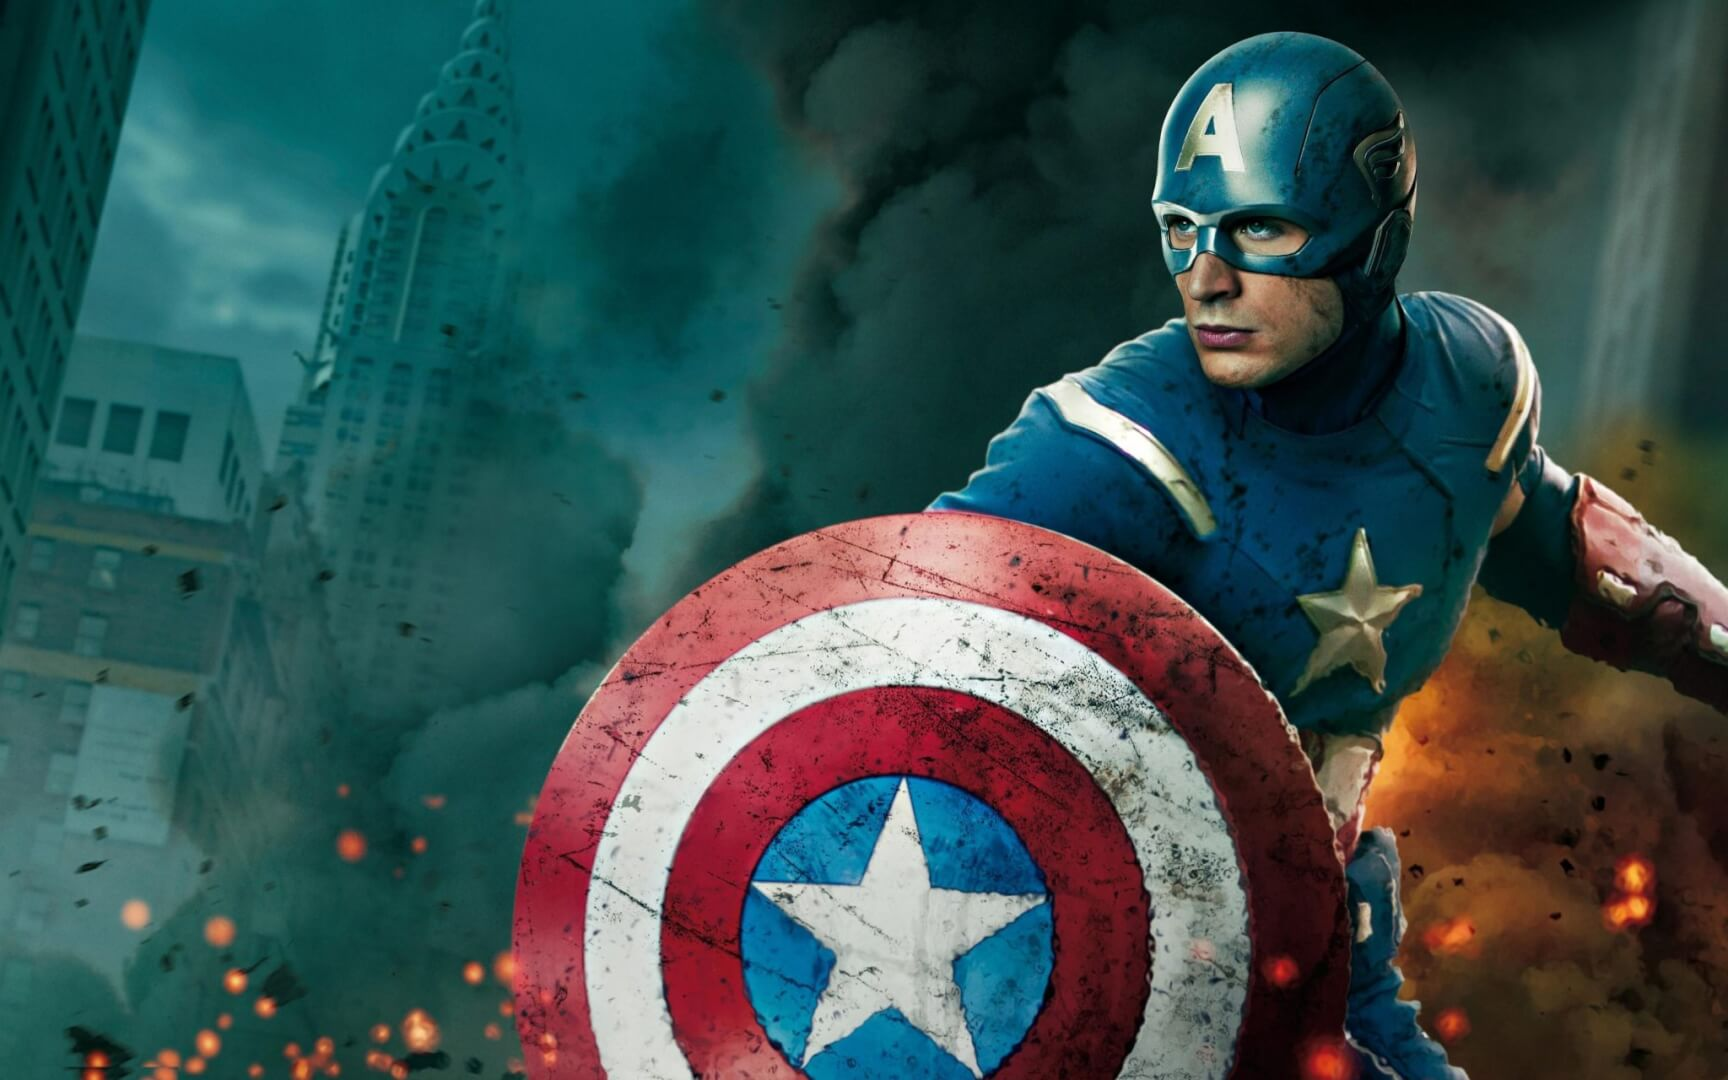 patent reveals captain america shield throwing experience could come to disney theme parks. Black Bedroom Furniture Sets. Home Design Ideas